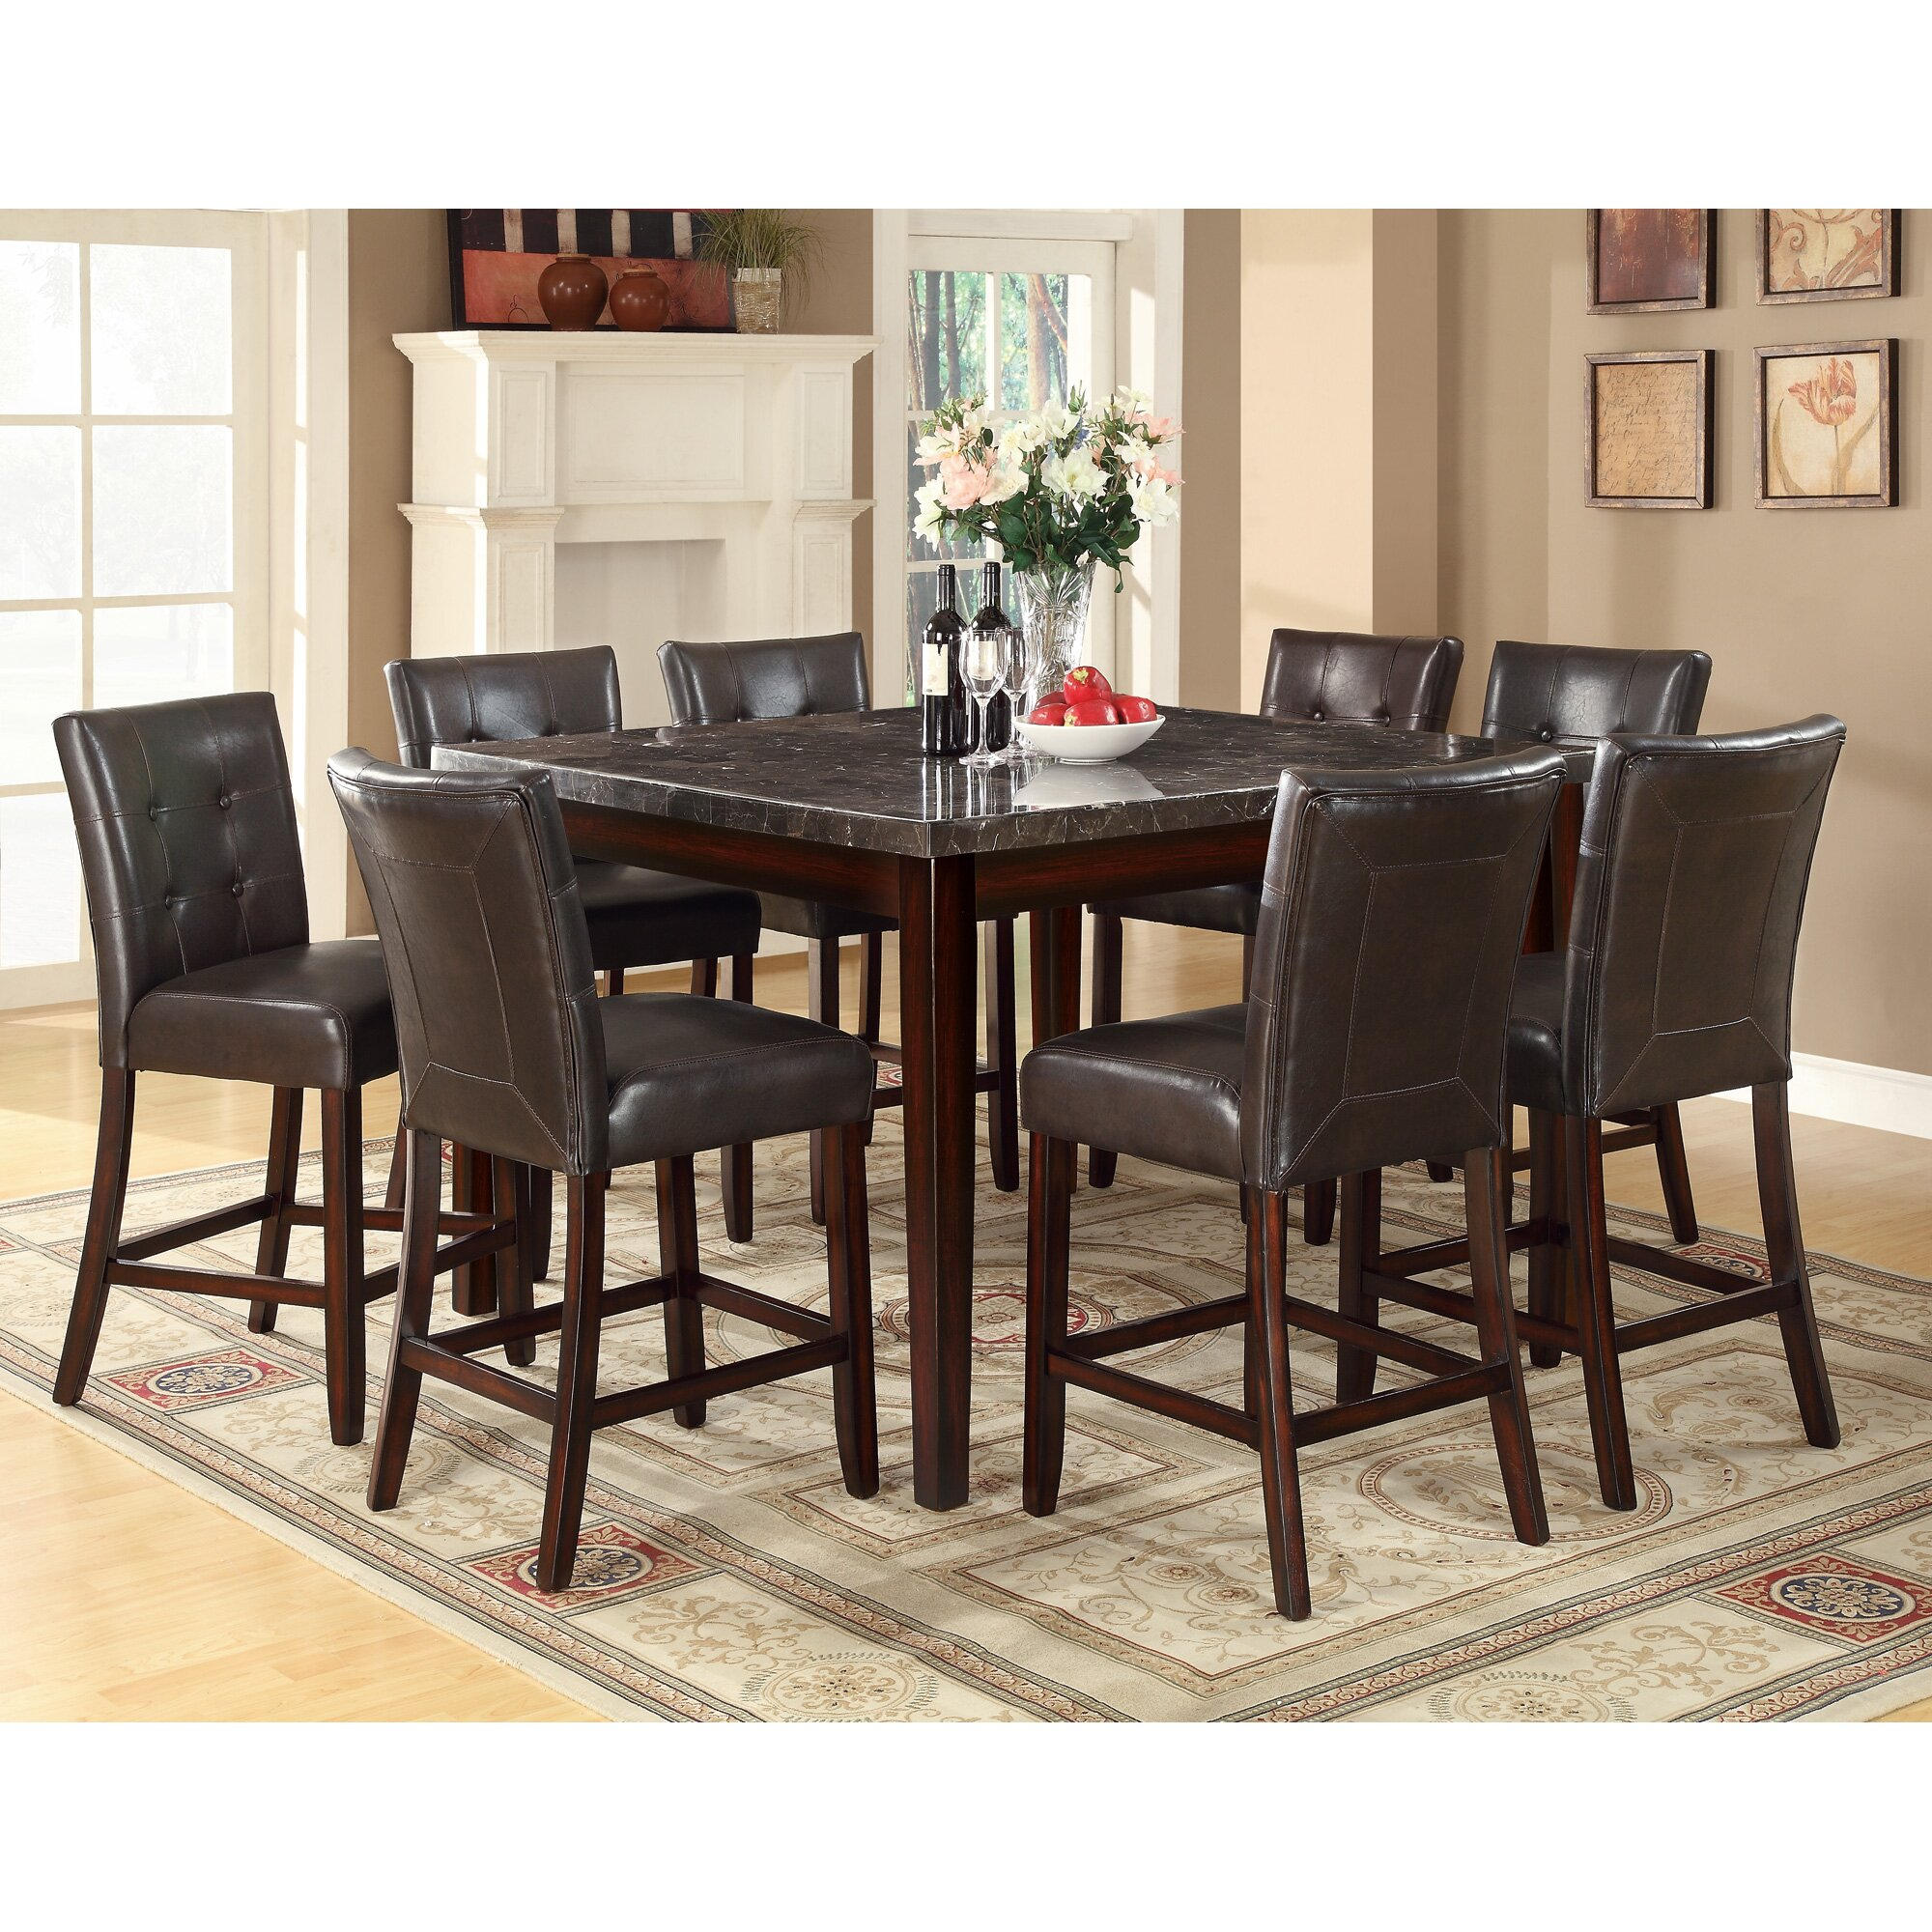 Counter Height Dining Tables: Alcott Hill Cincinnati Counter Height Dining Table